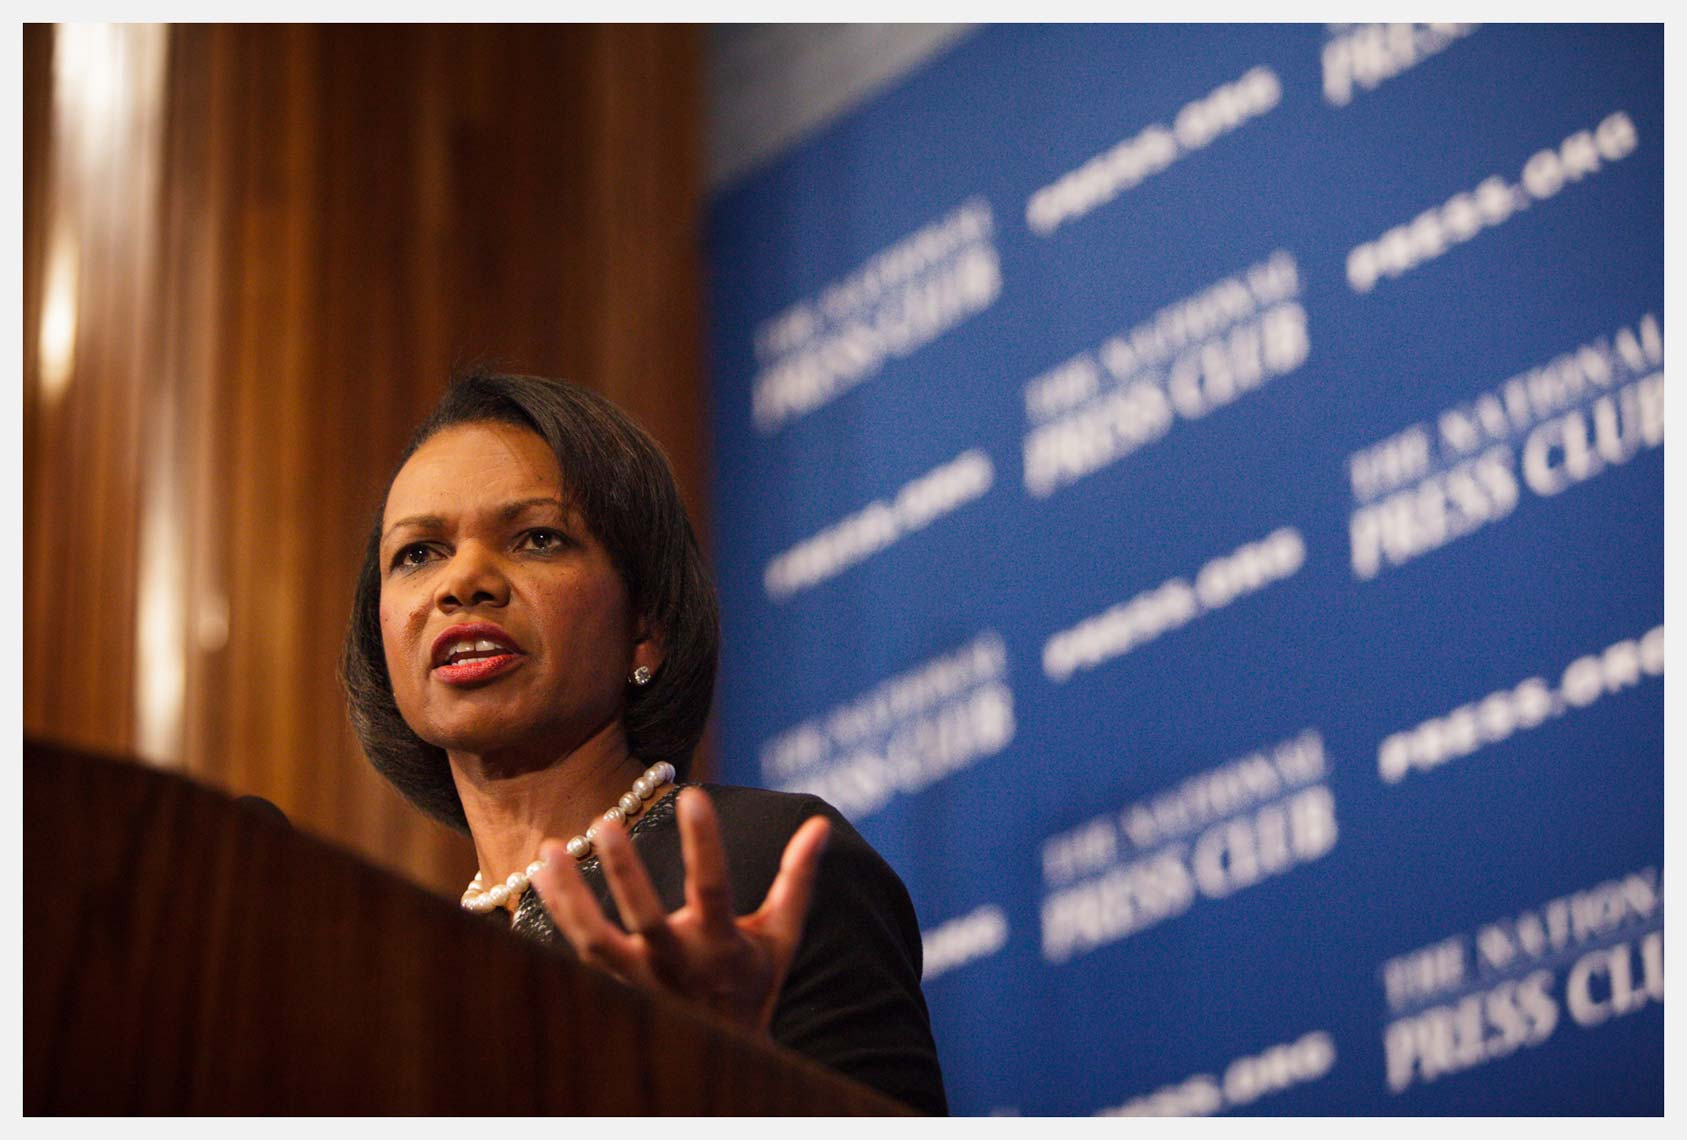 Former United States Secretary of State Condoleezza Rice speaks at the National Press Club in Washington DC